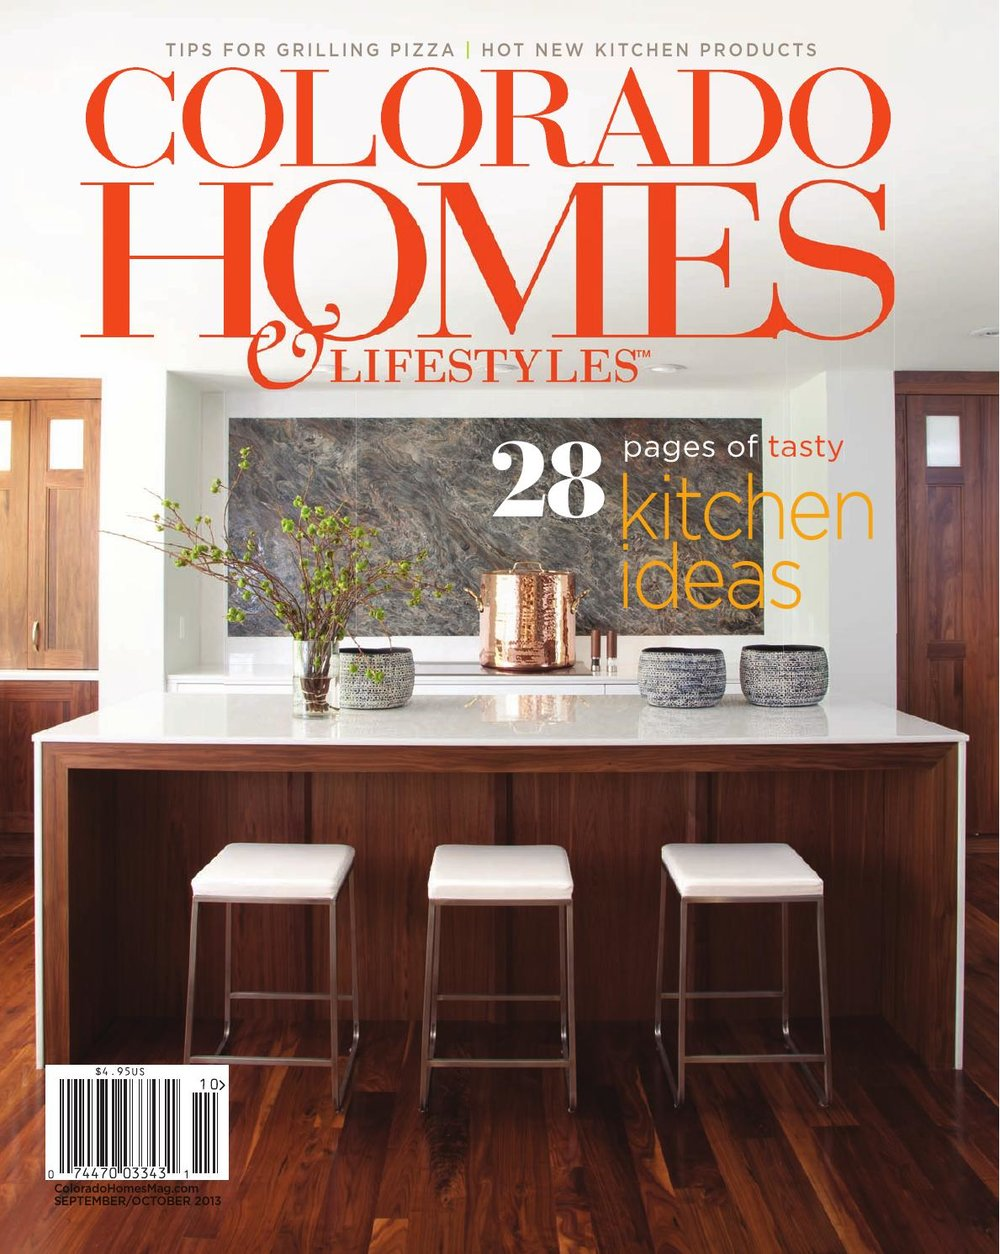 Colorado Homes & Lifestyles September/October 2013